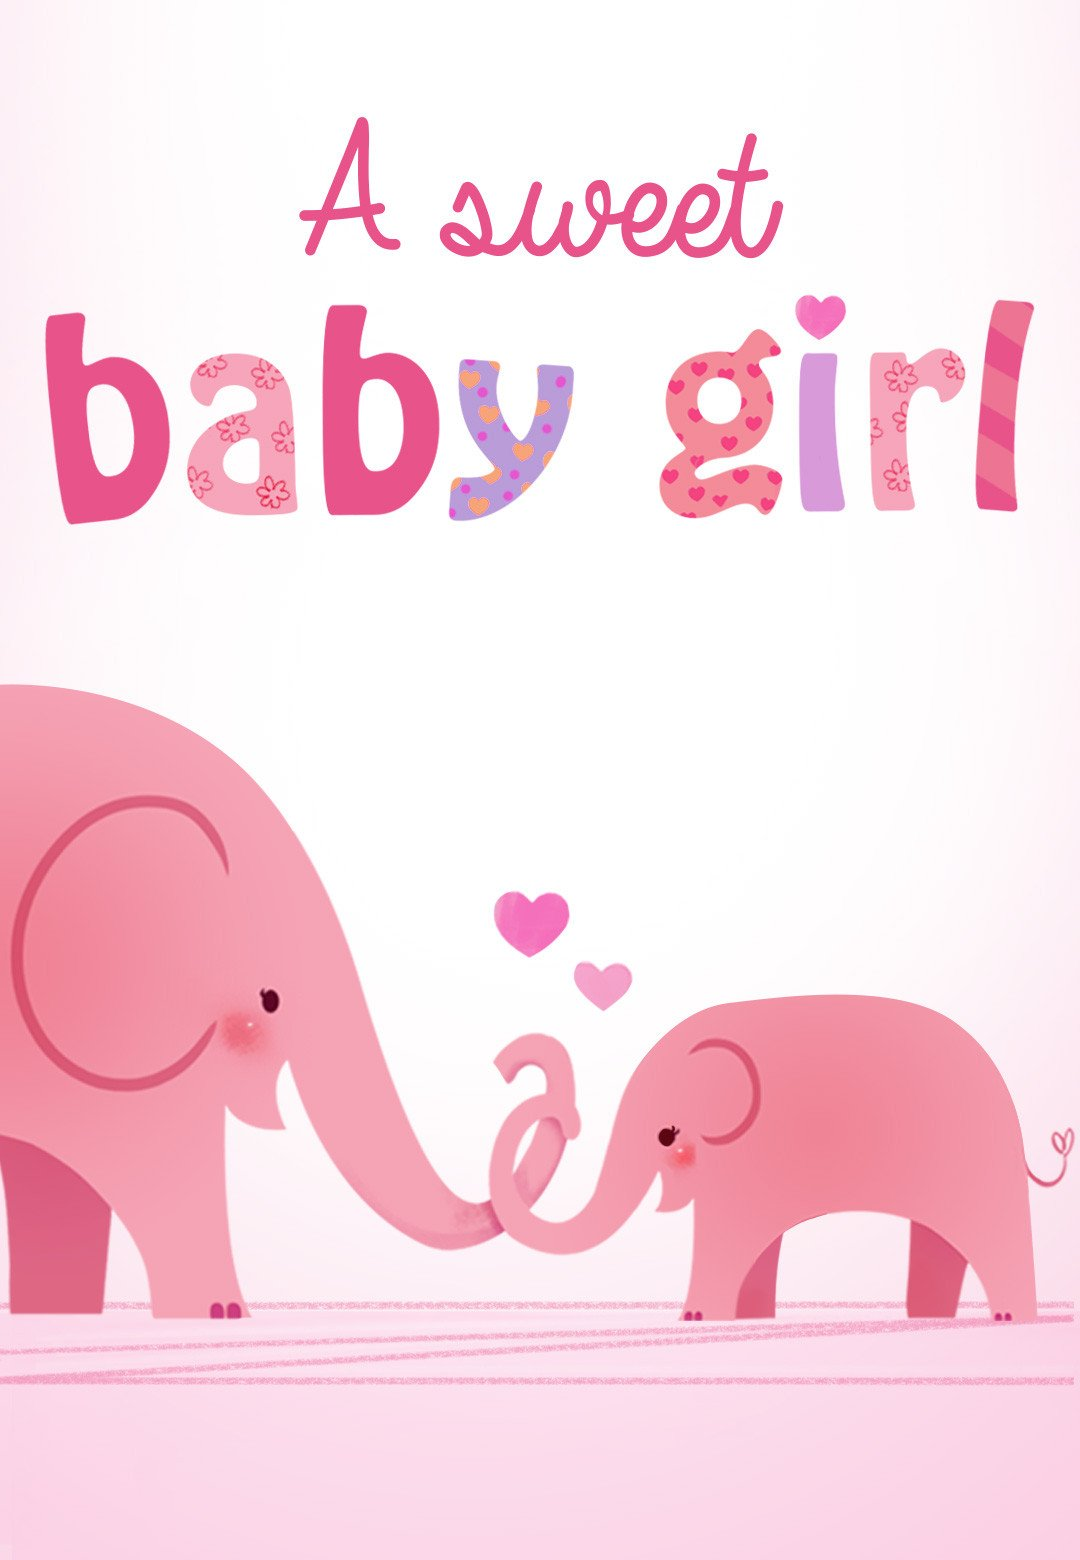 Baby Shower Card Template forever In Your Heart Baby Shower & New Baby Card